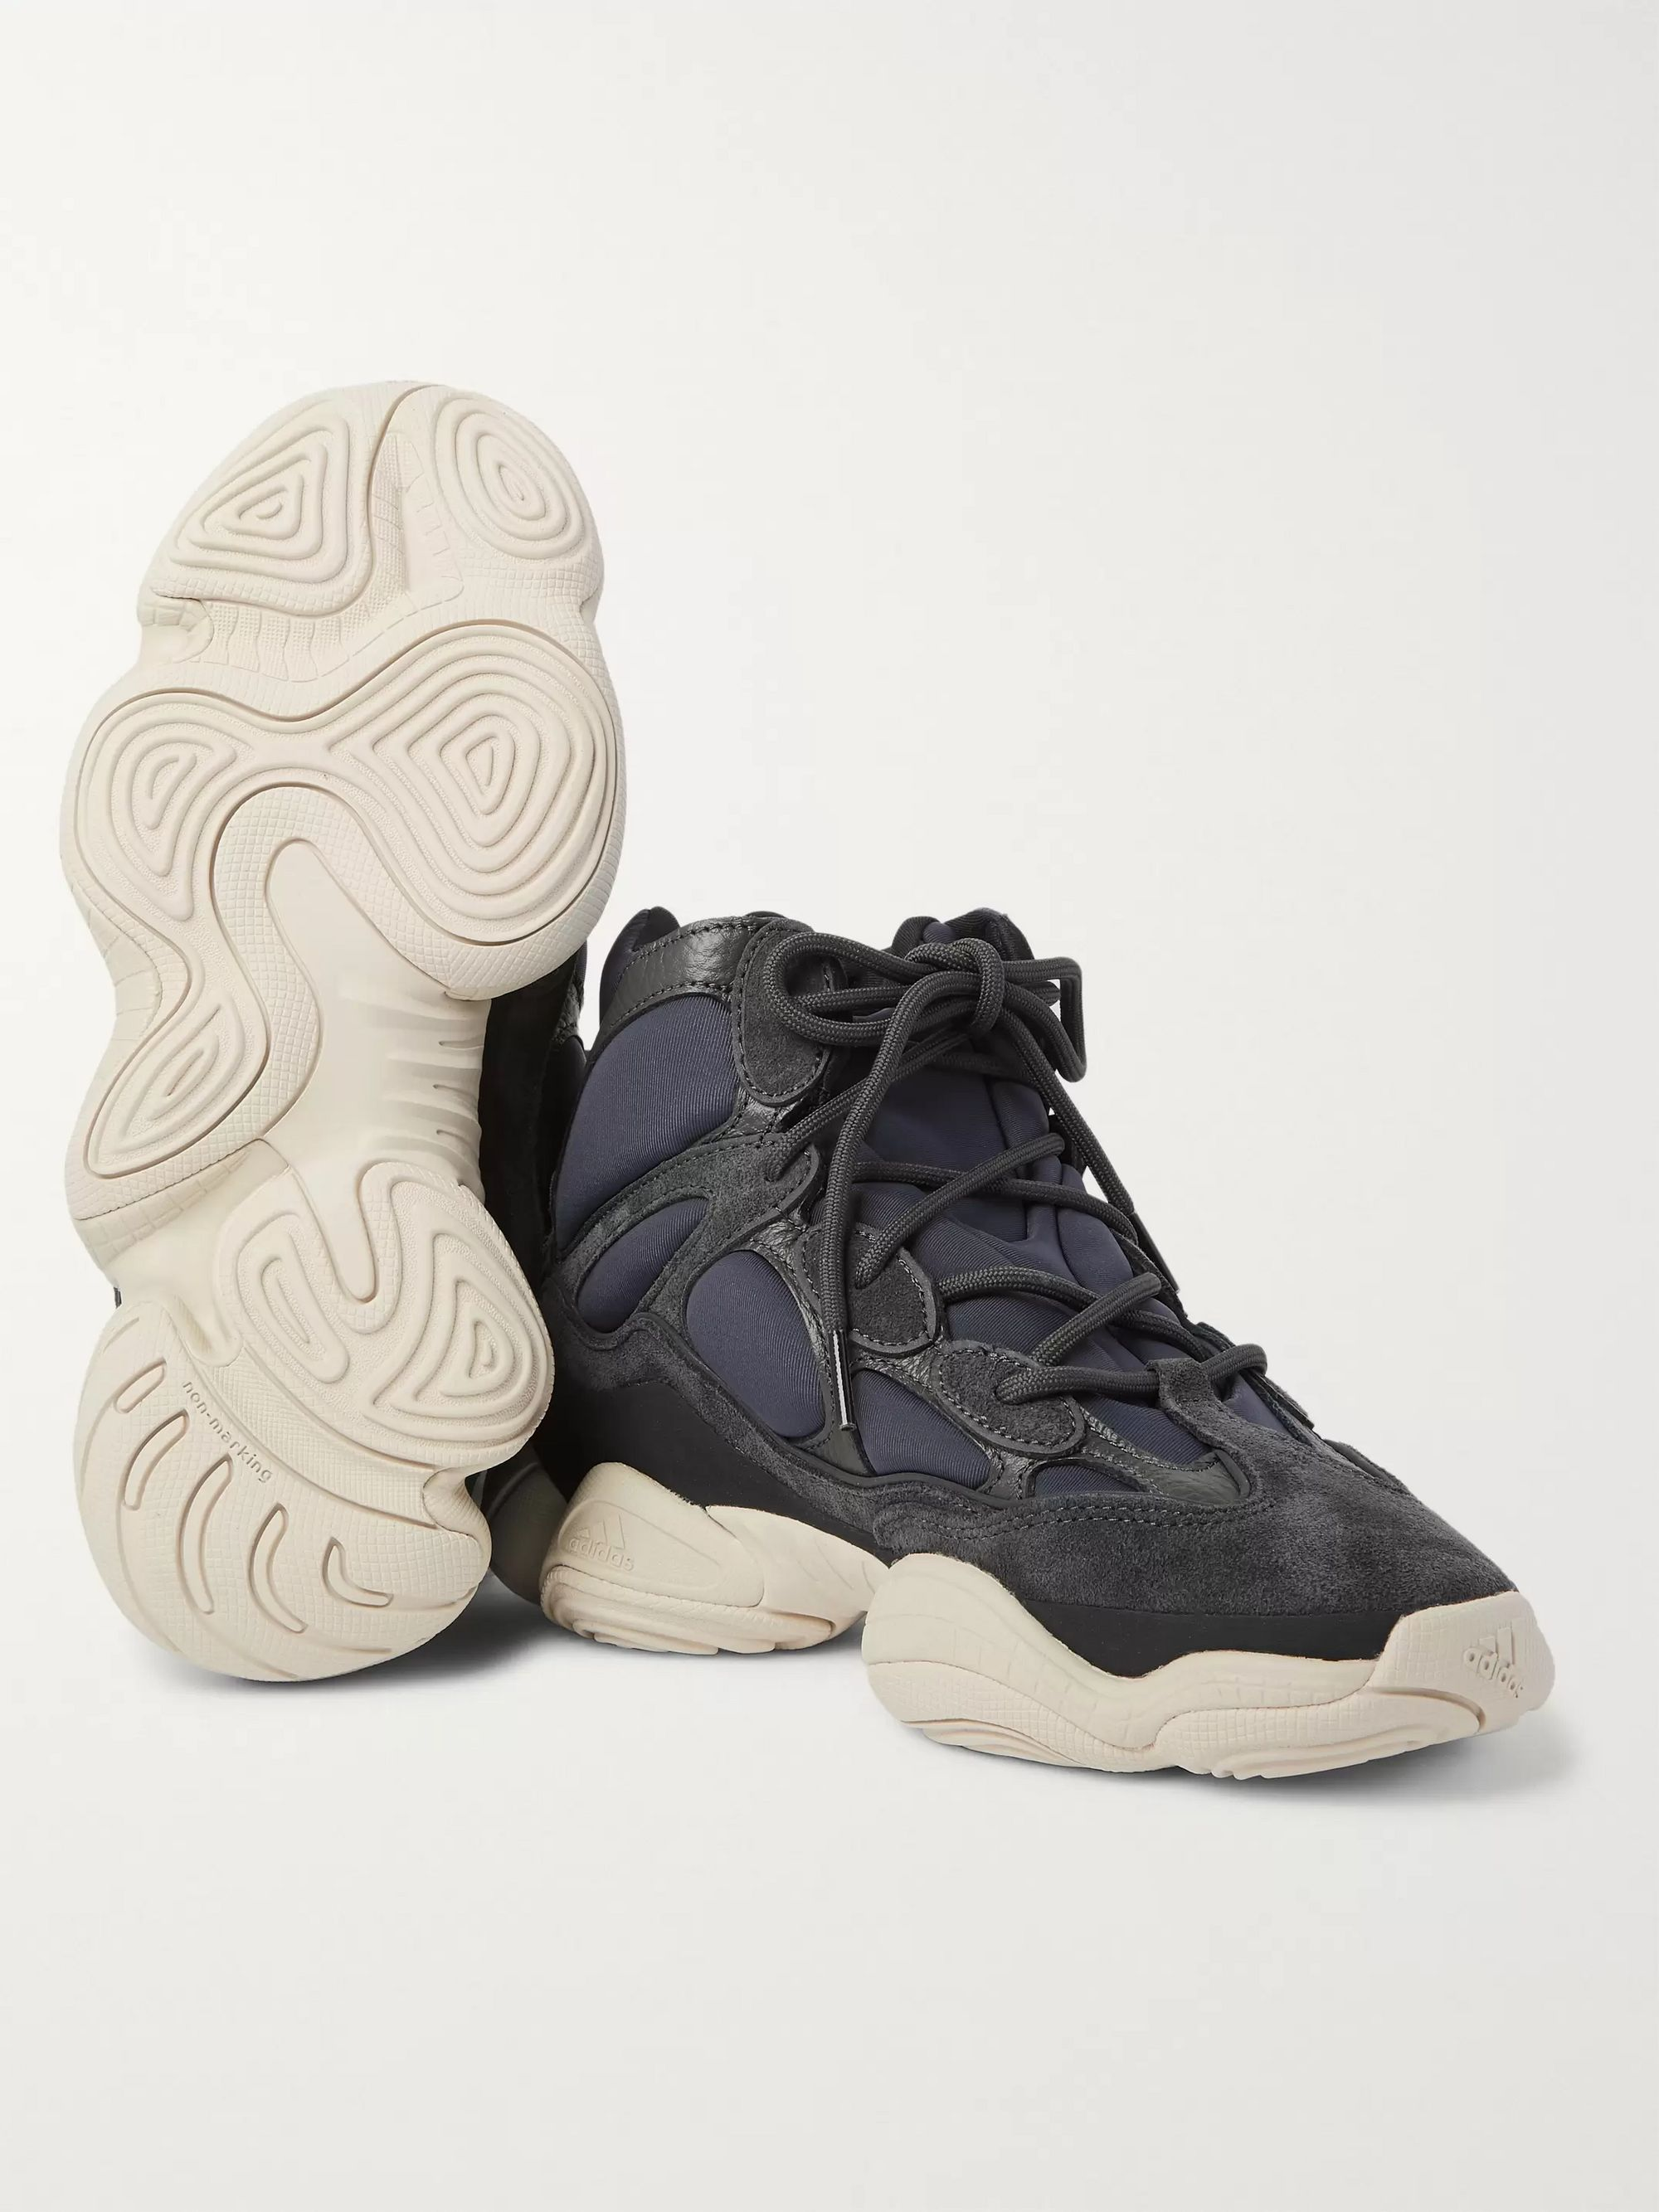 Yeezy High 500 Neoprene, Suede and Leather High Top Sneakers